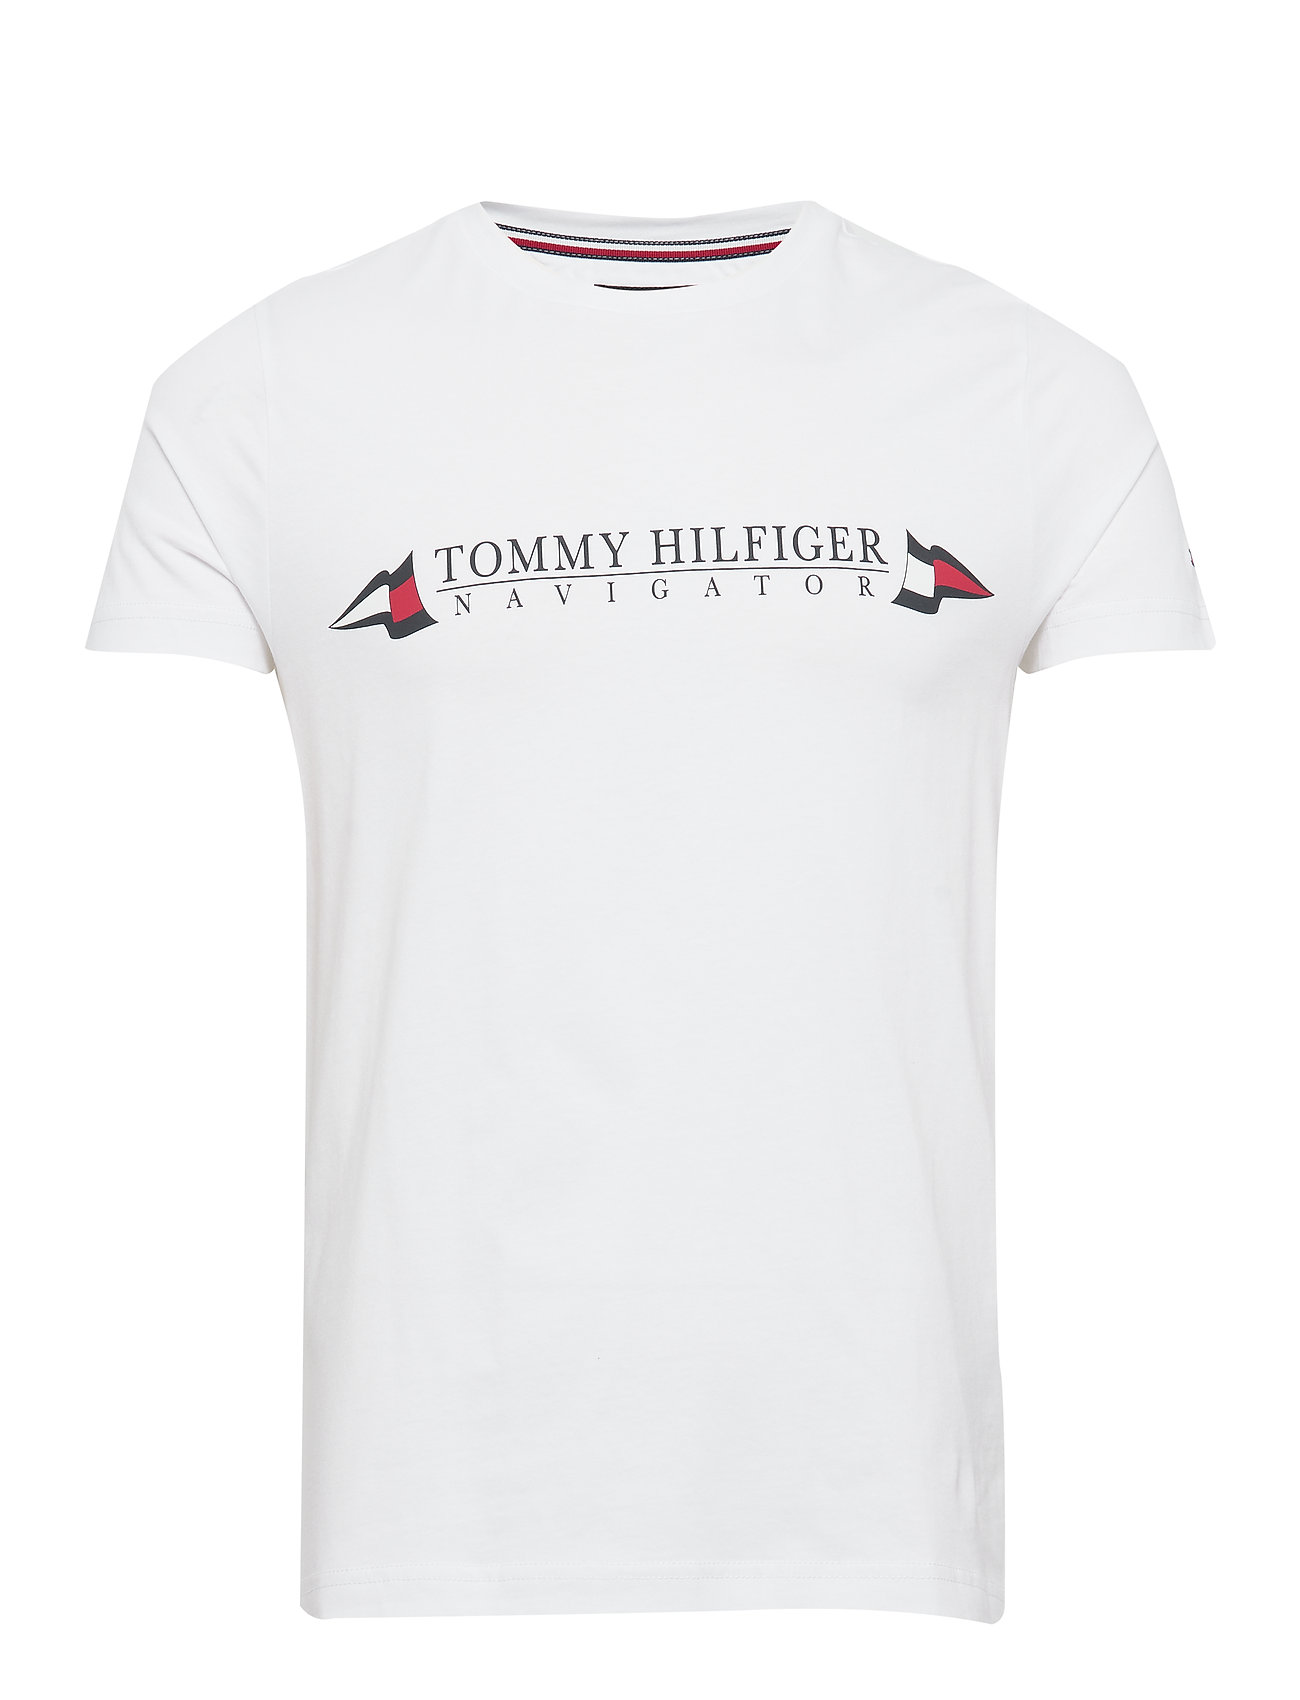 Tommy Hilfiger SAILING FLAGS TEE - WHITE